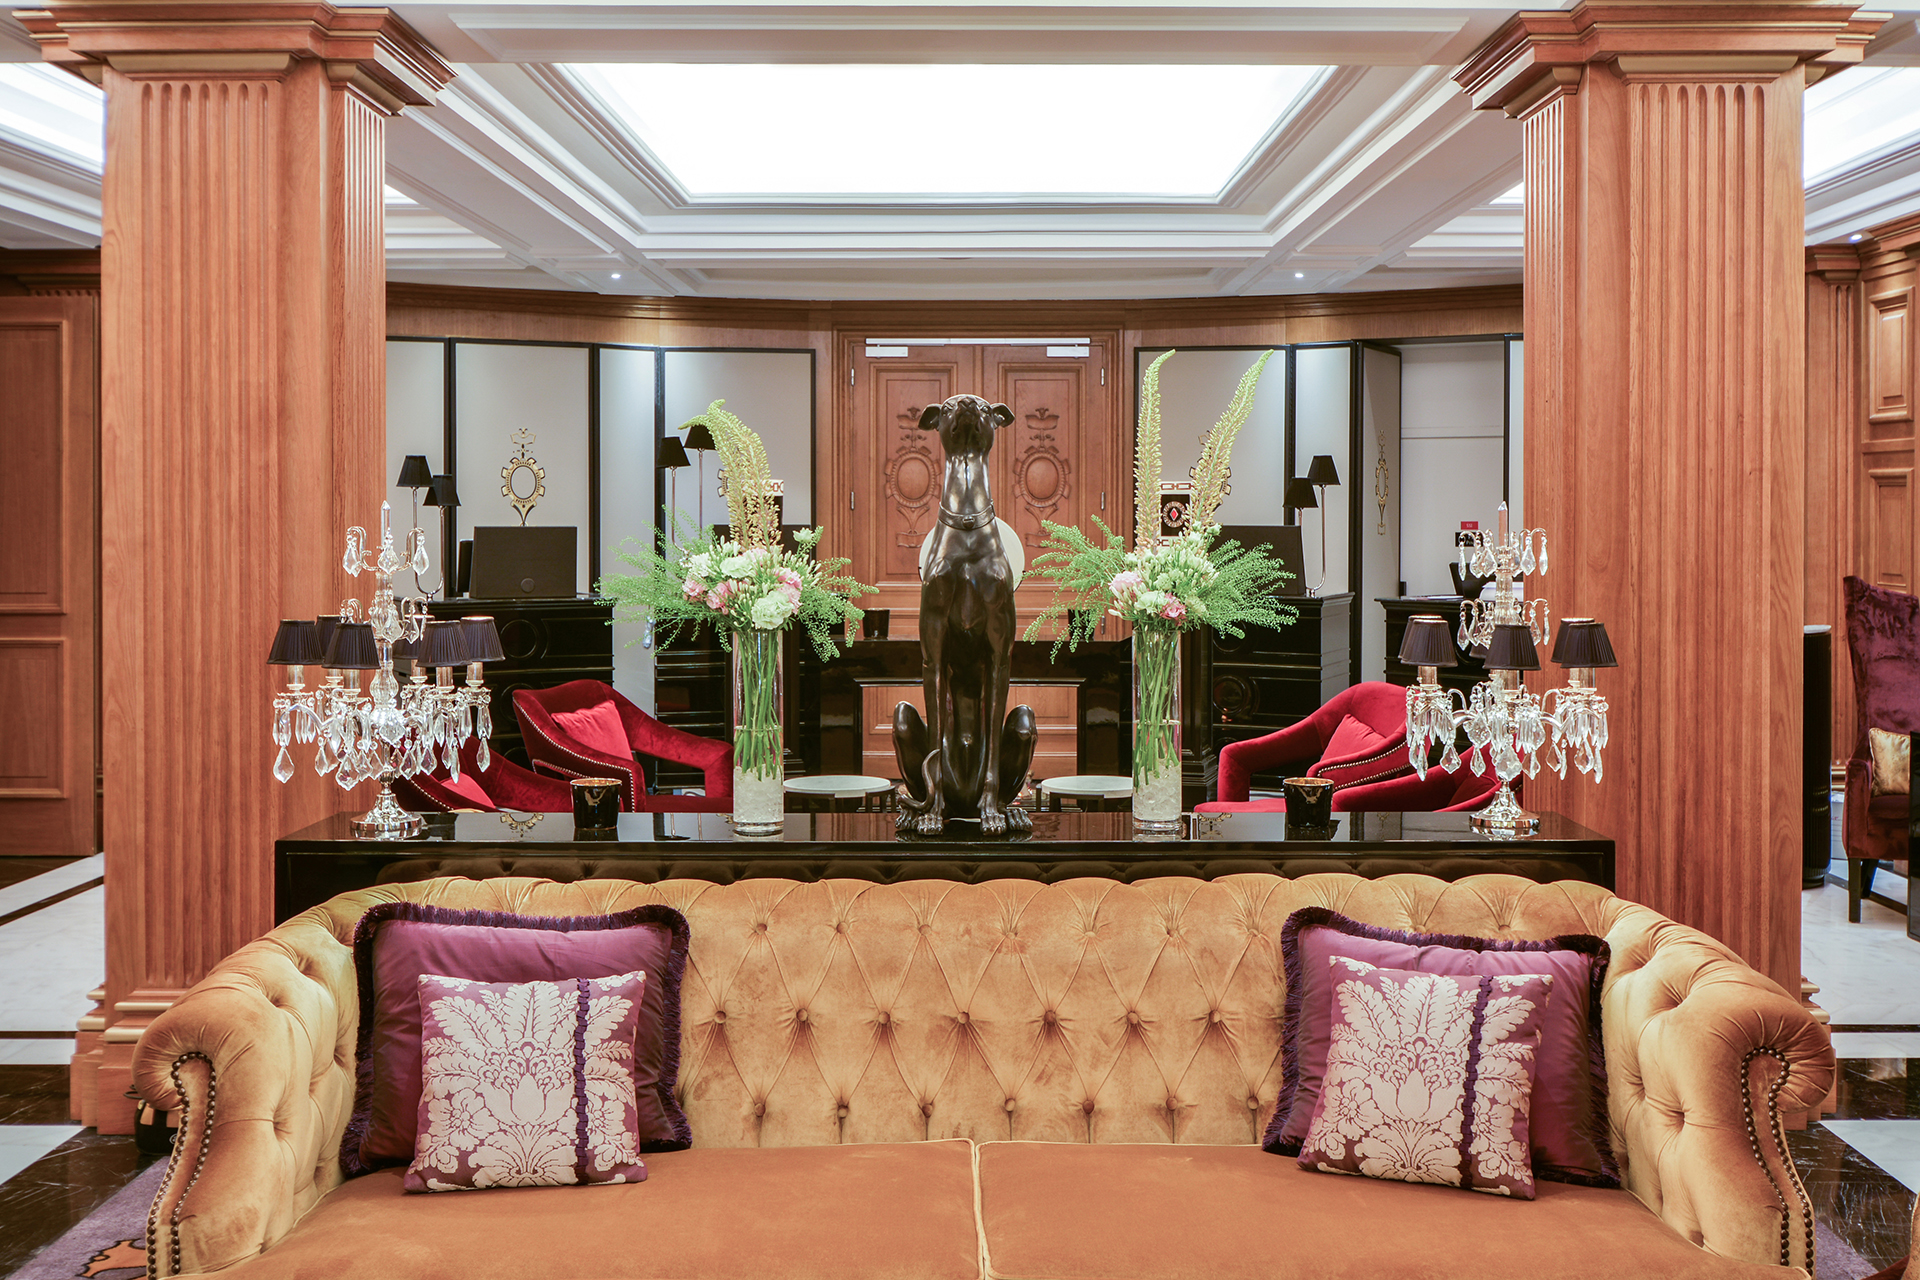 Maison_Astor_Paris_lobby_fashionela